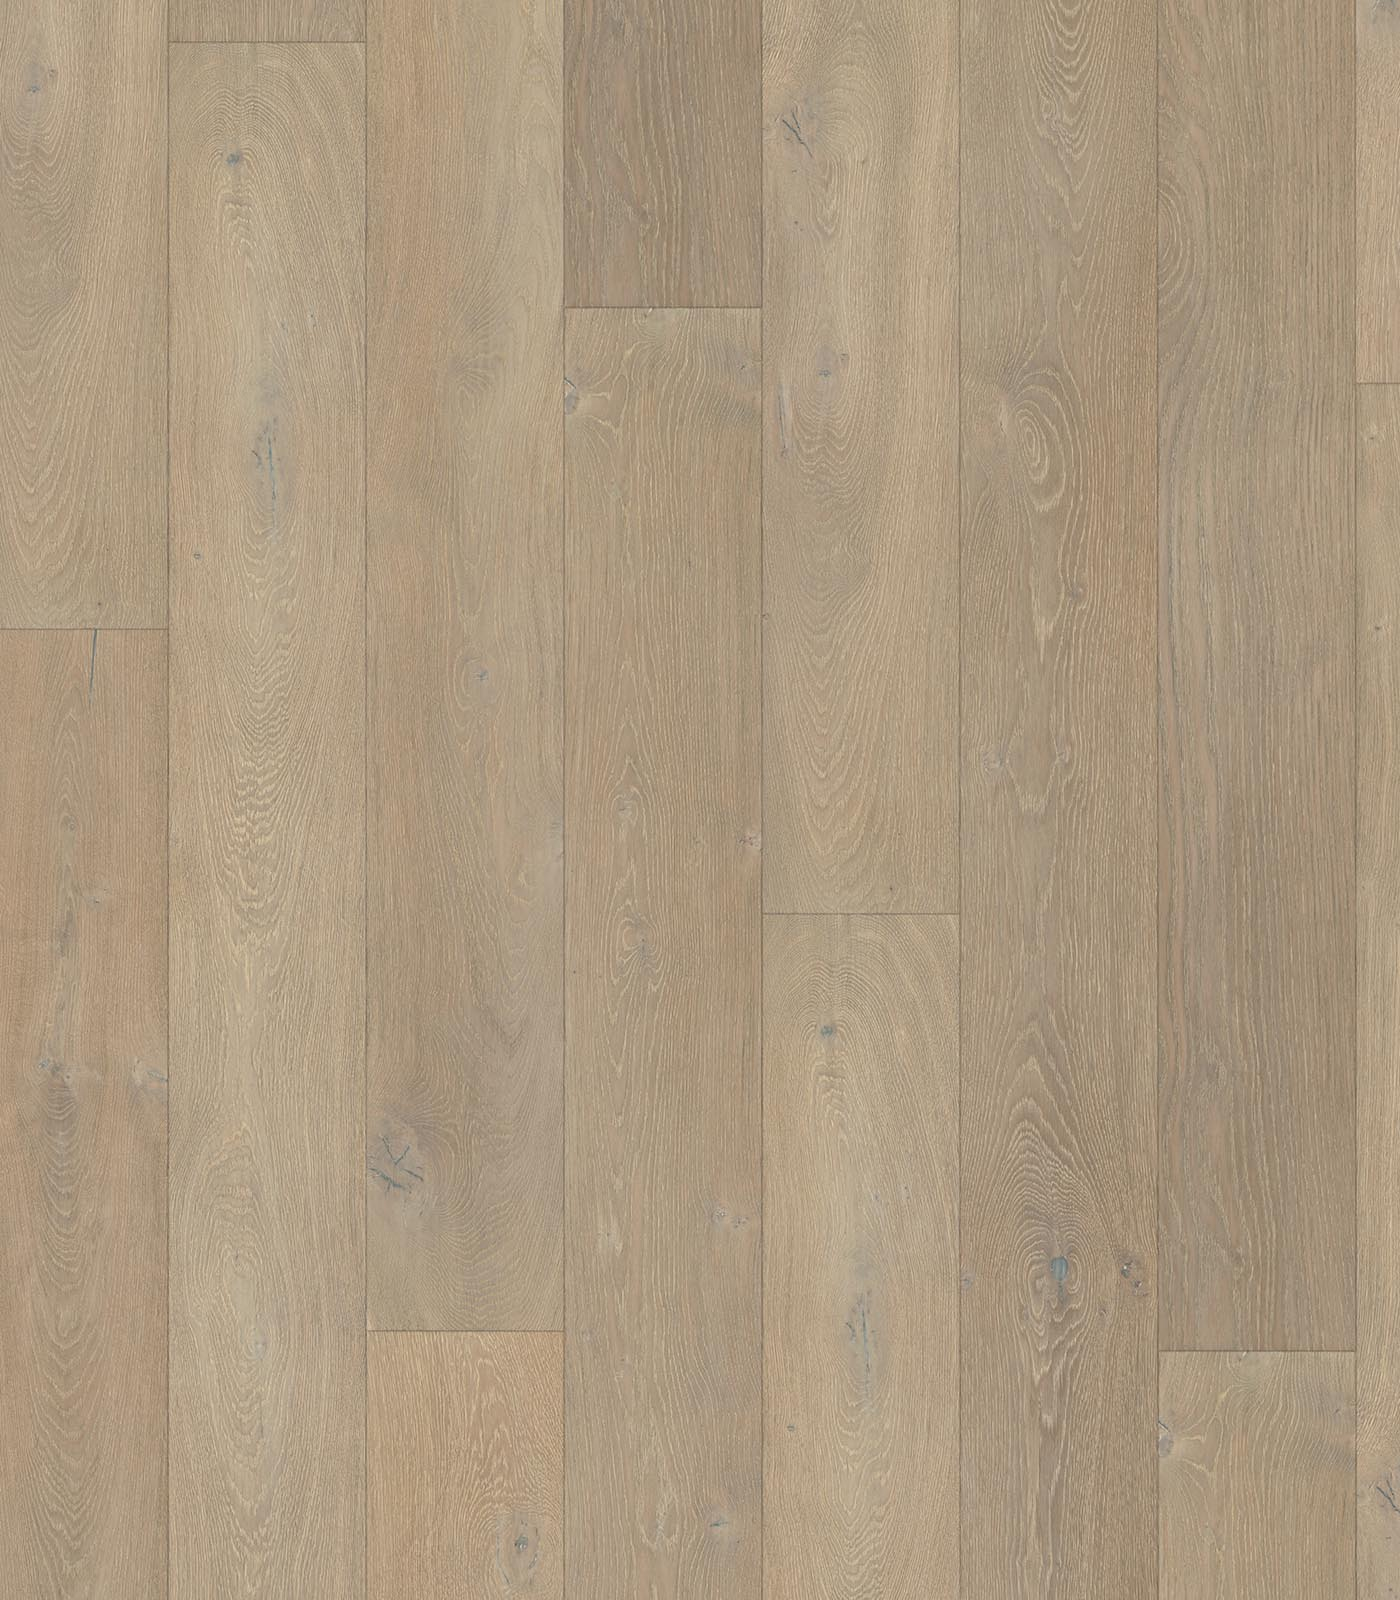 Tahiti-Lifstyle Collection-European Oak Floors-flat